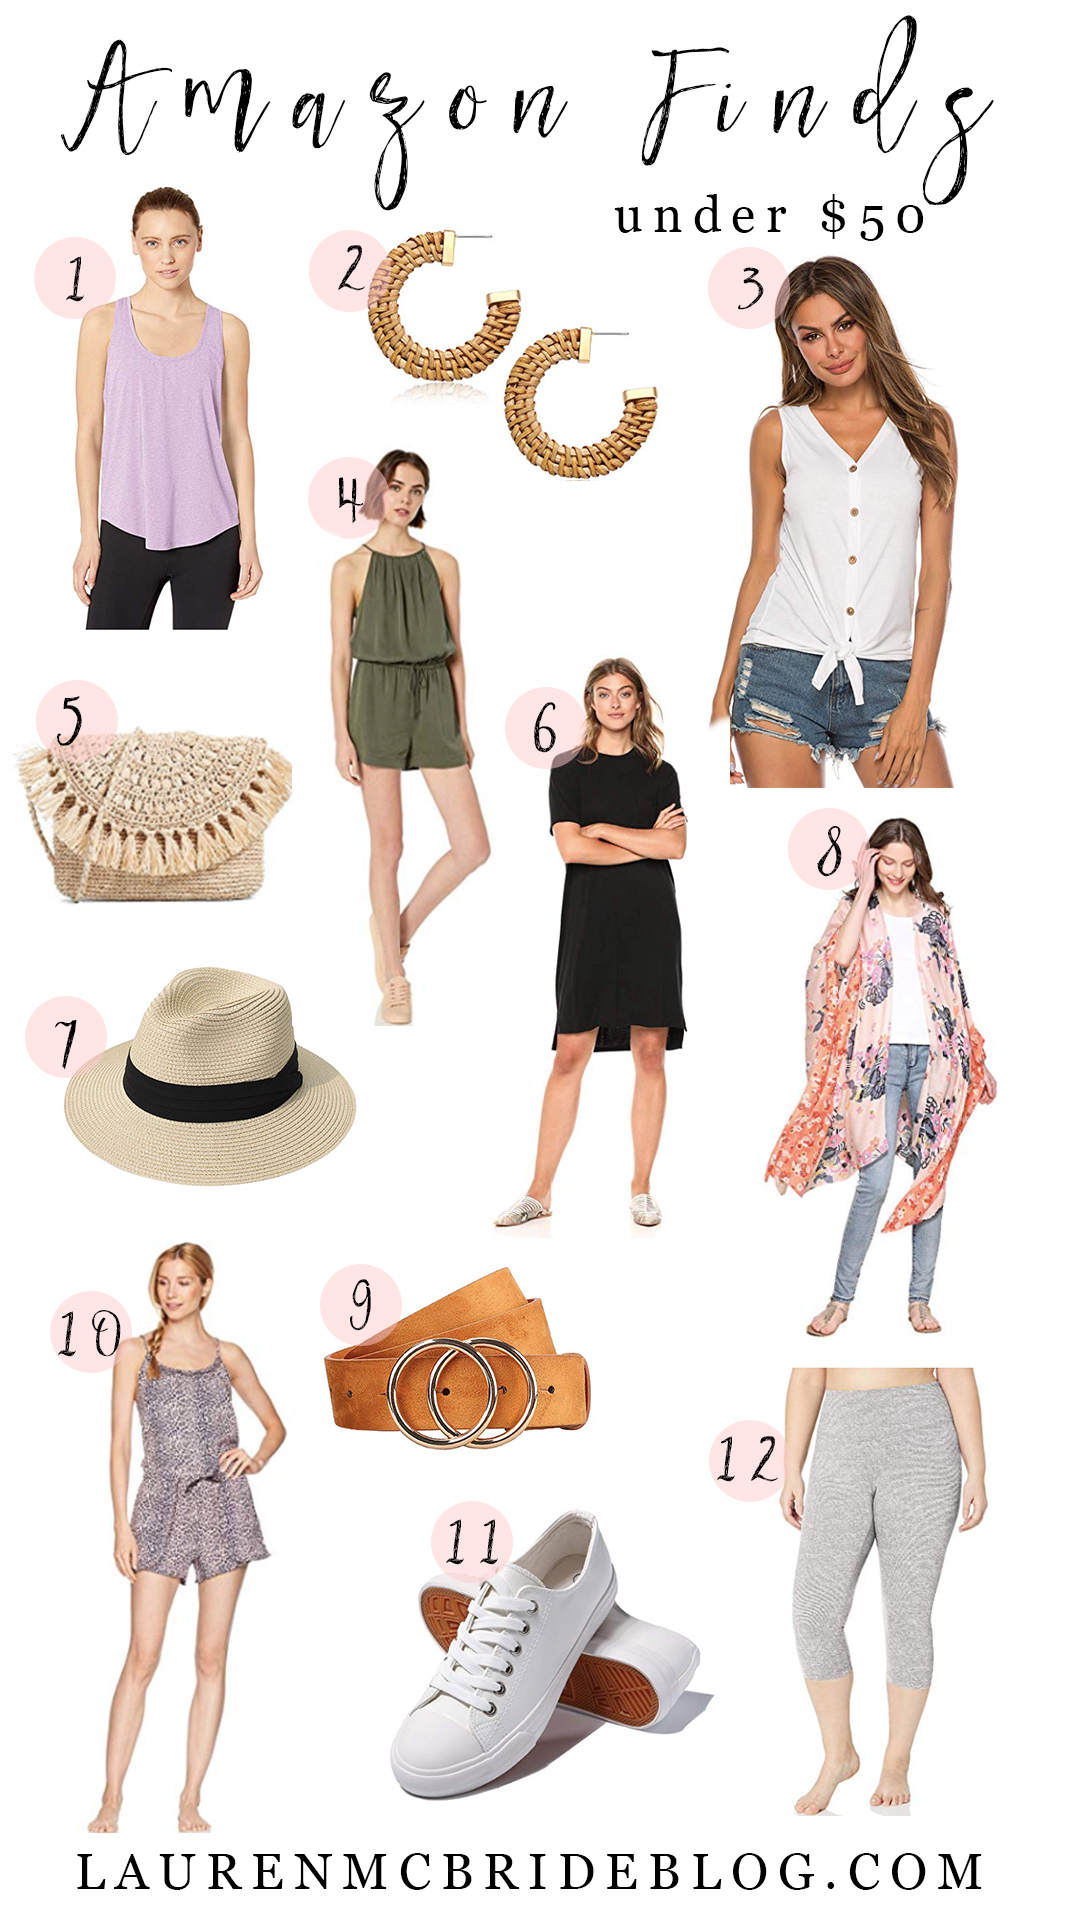 Connecticut life and style blogger Lauren McBride shares her June Amazon Finds Under $50 featuring summer essentials and workout finds.